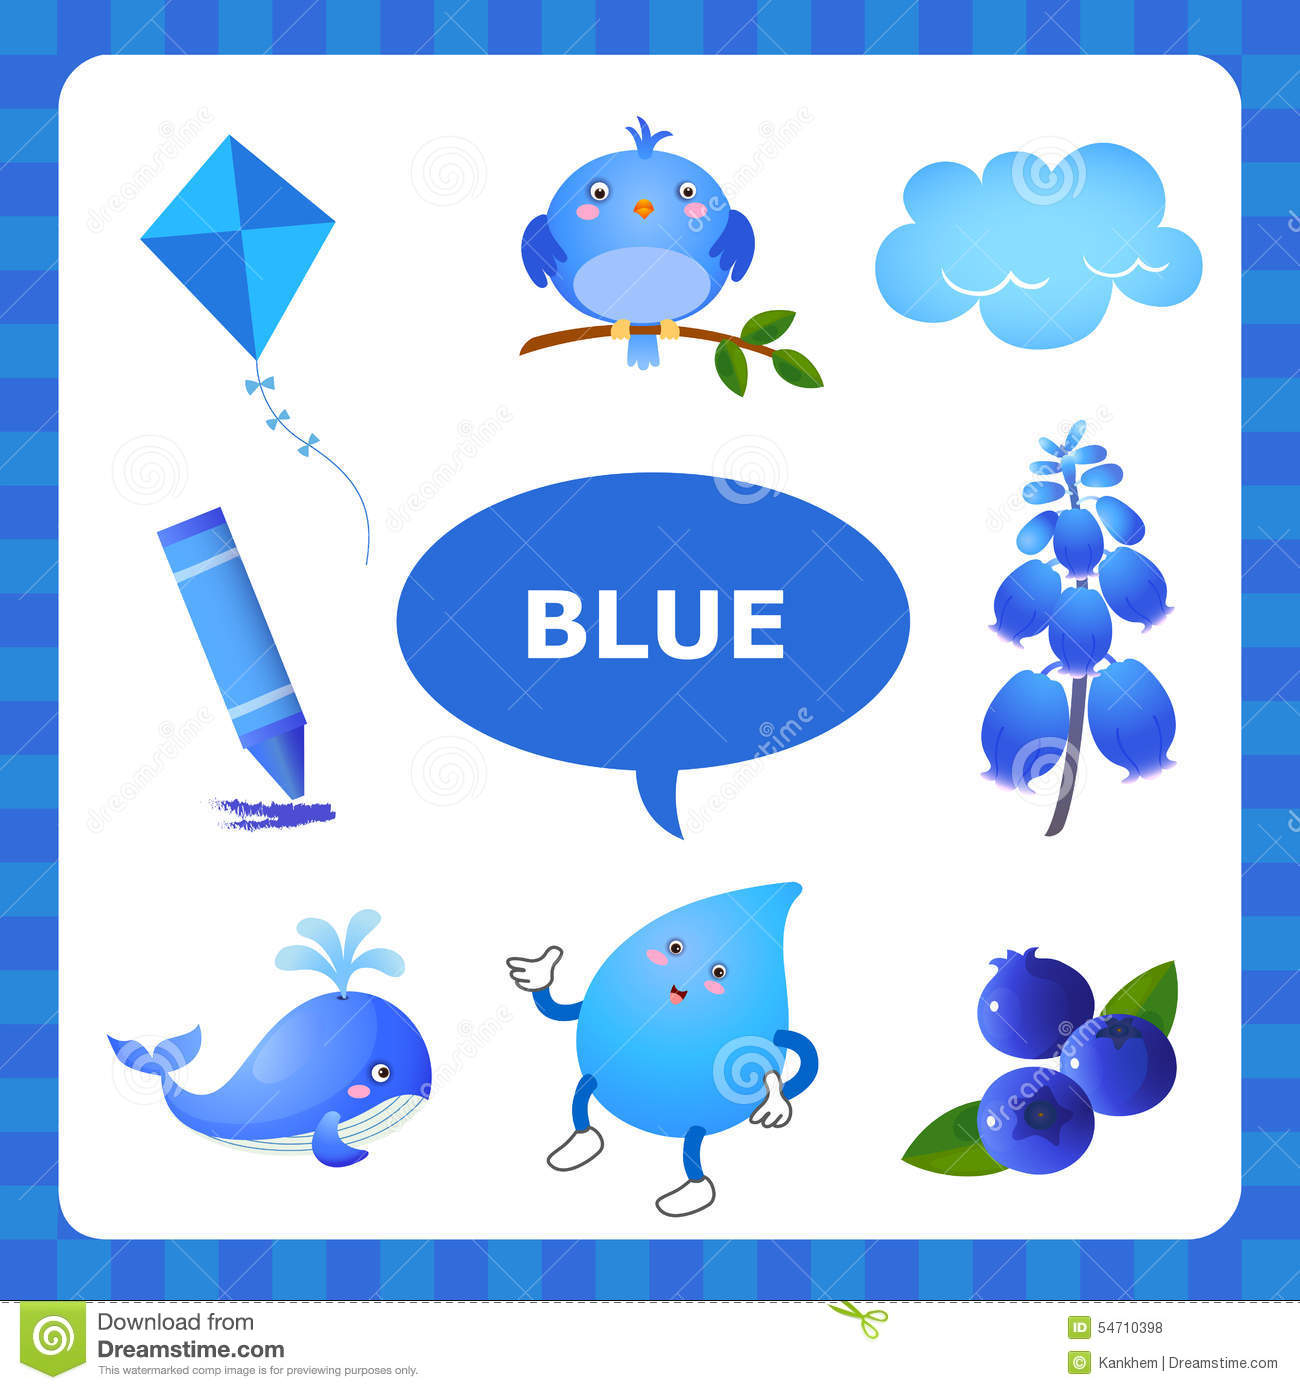 blue objects clipart - photo #12